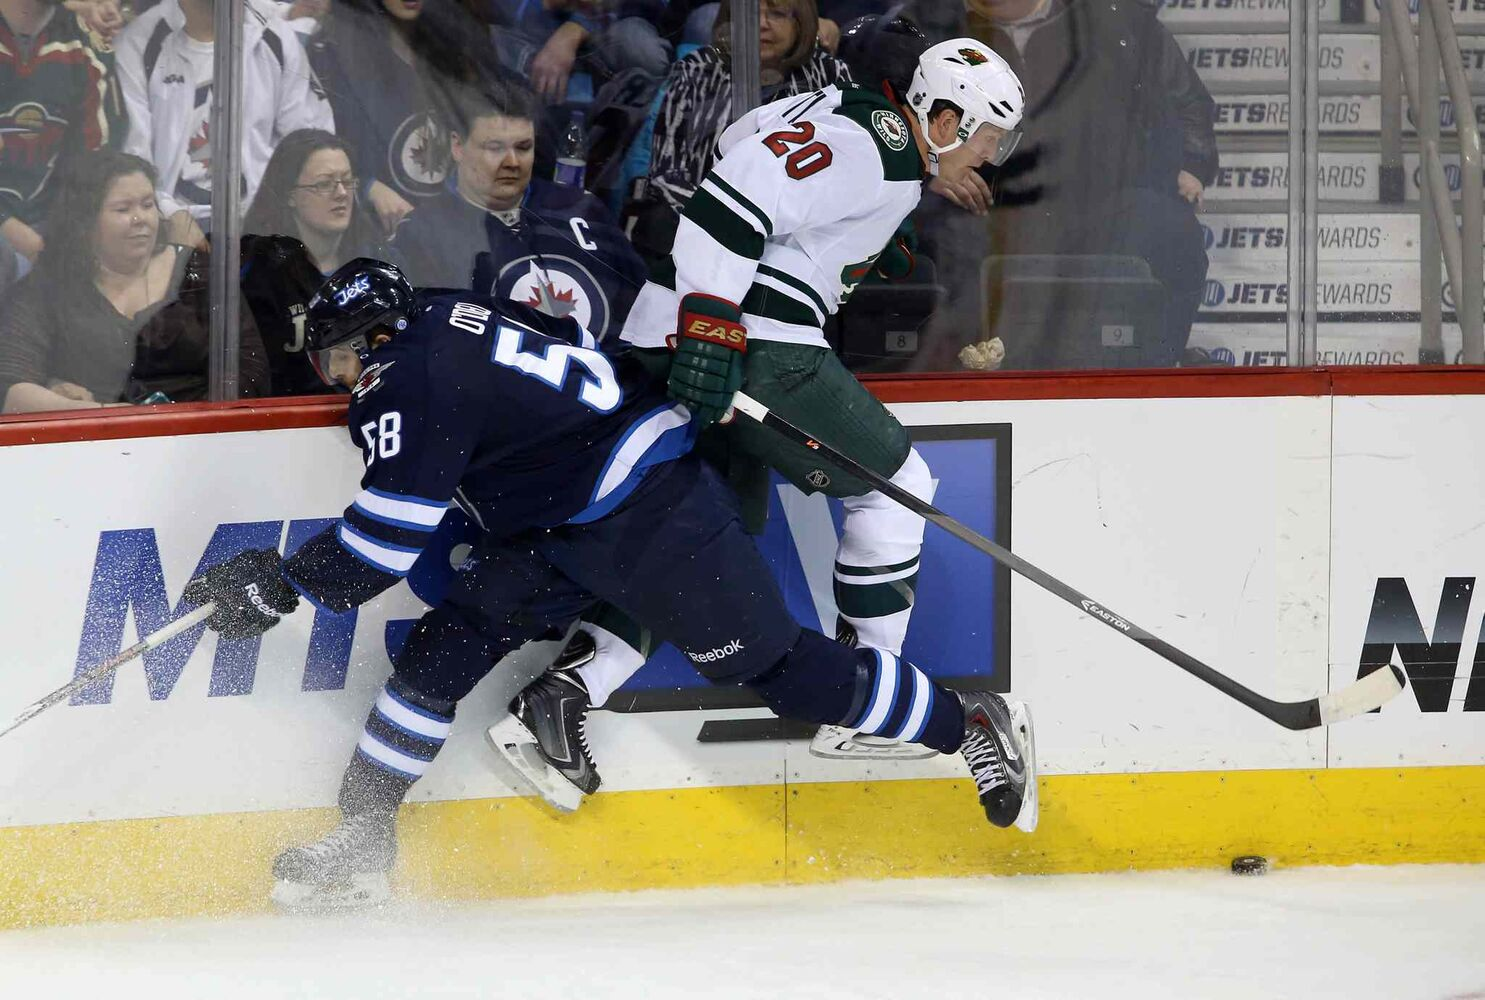 The Jets' Eric O'Dell collides with the Wild's Ryan Suter in the third period. (TREVOR HAGAN / THE CANADIAN PRESS)